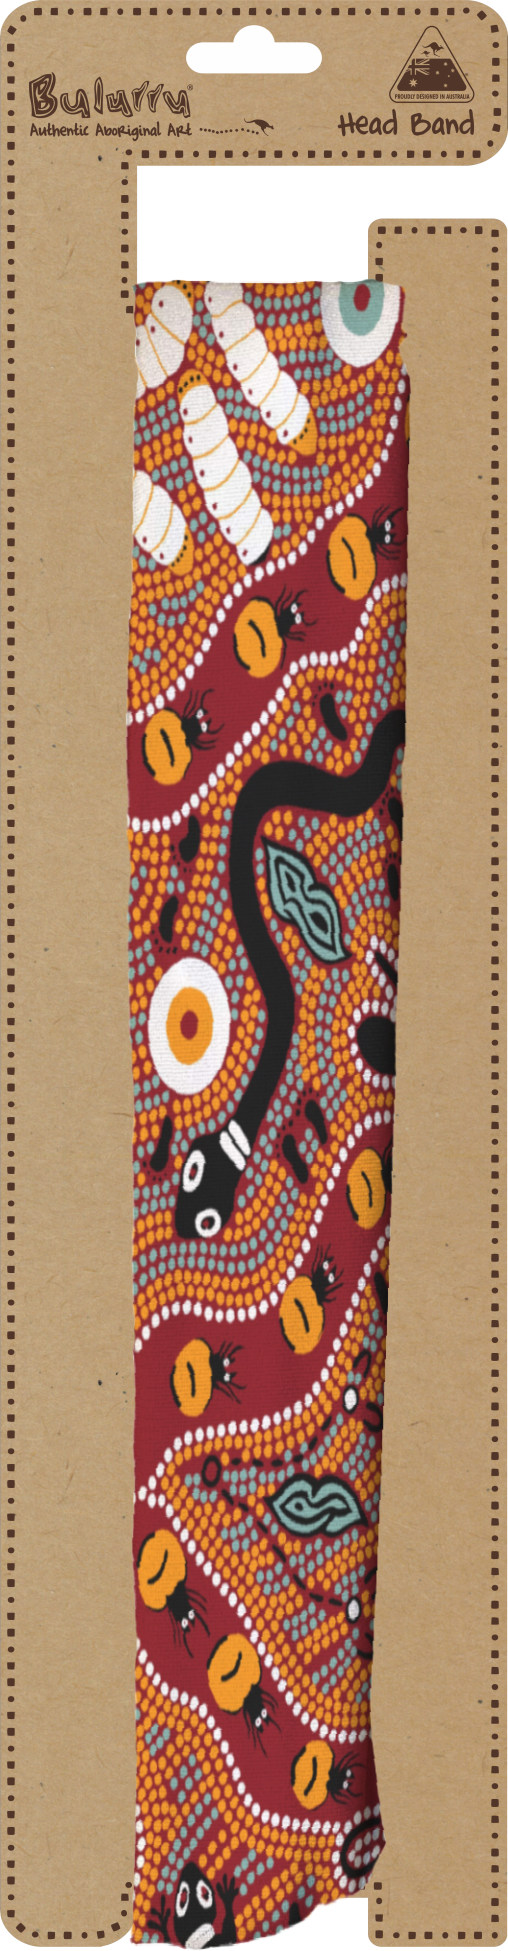 **NEW** Bulurru Head Band - 4 Aboriginal designs to choose from